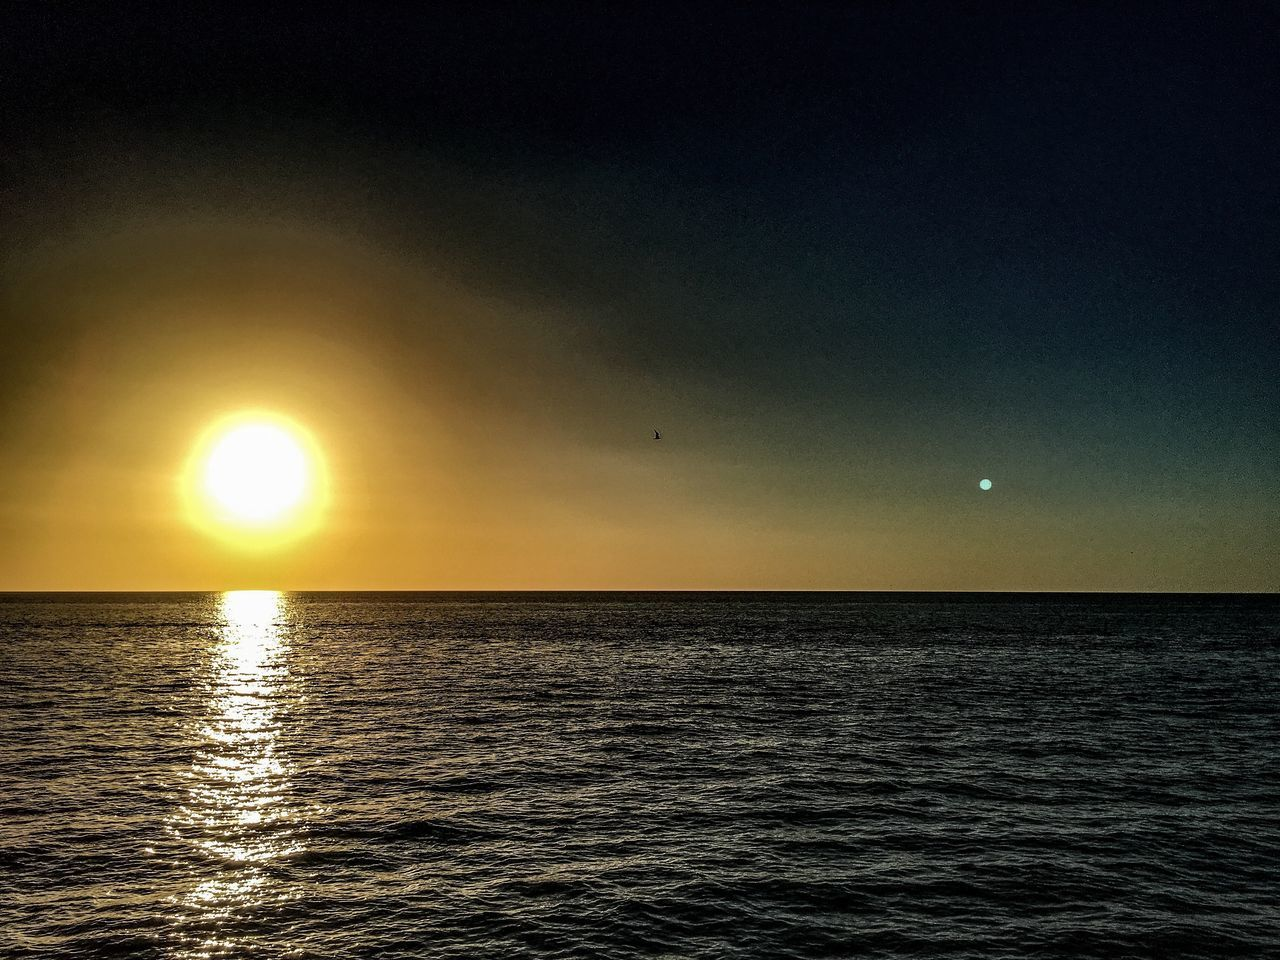 sea, beauty in nature, scenics, sunset, sun, tranquil scene, nature, horizon over water, water, tranquility, idyllic, waterfront, sky, outdoors, rippled, no people, reflection, moon, silhouette, yellow, clear sky, day